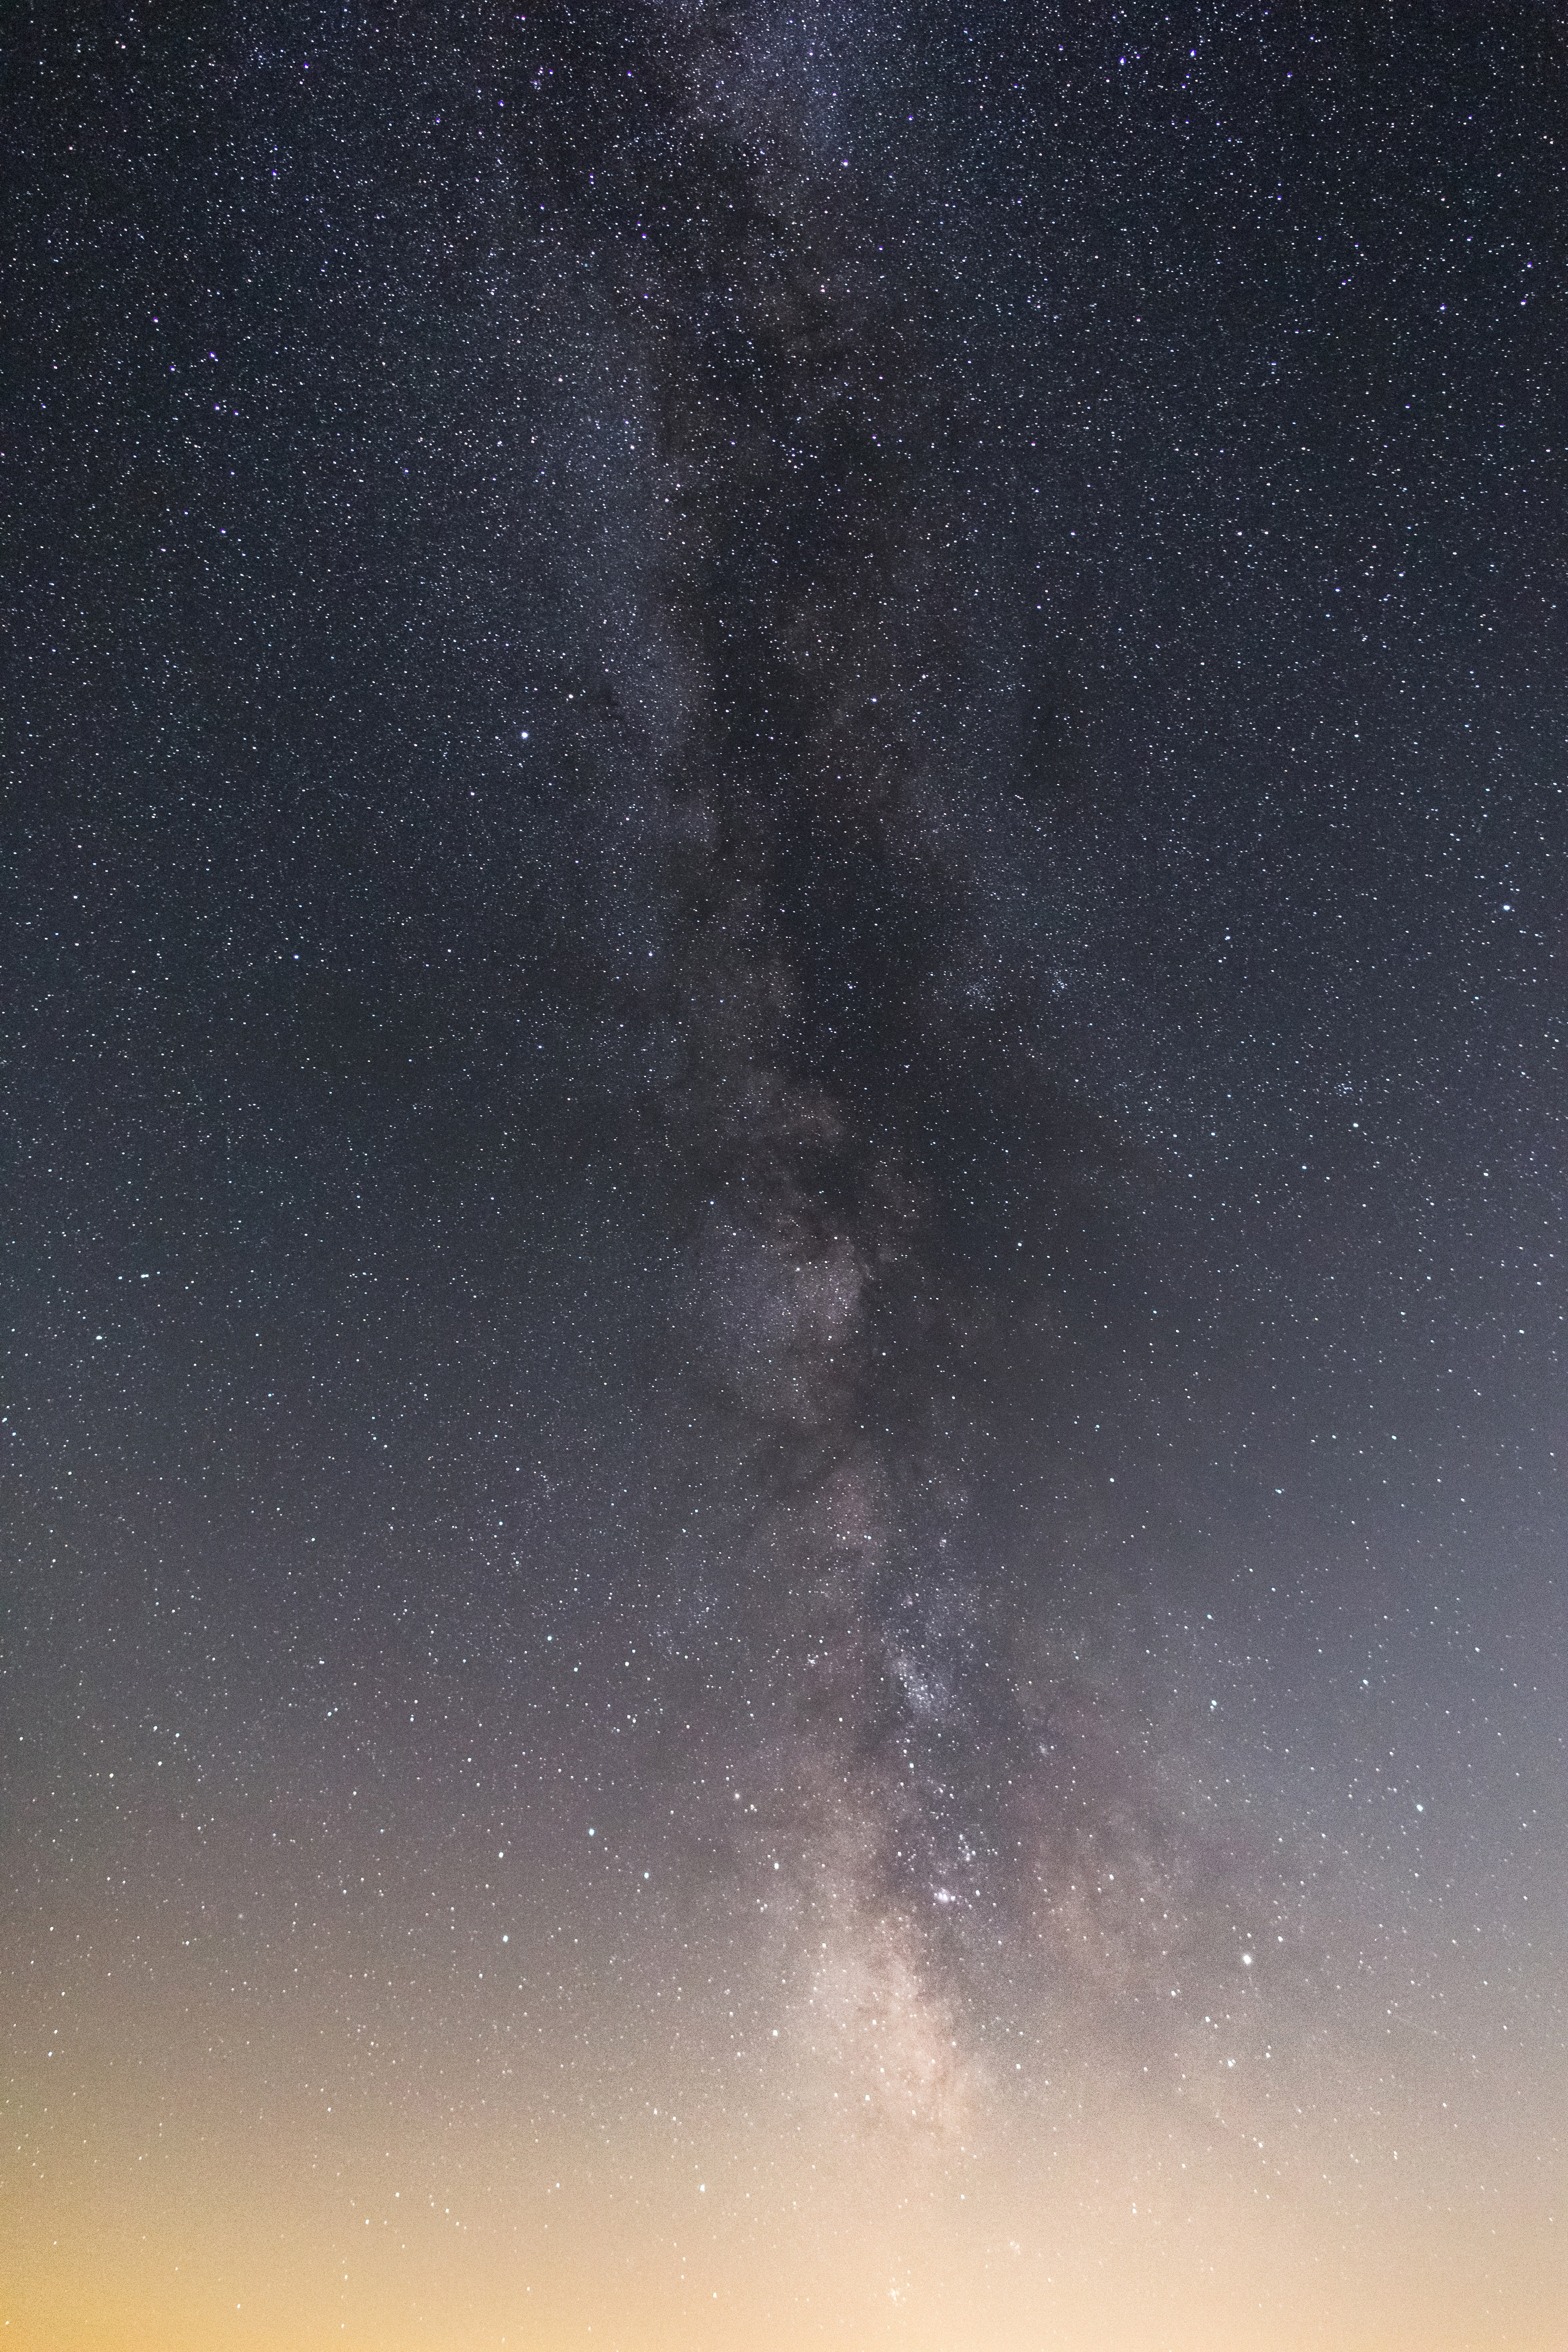 Nebula Sky, Abstract, Astronomy, Constellation, Constellations, HQ Photo